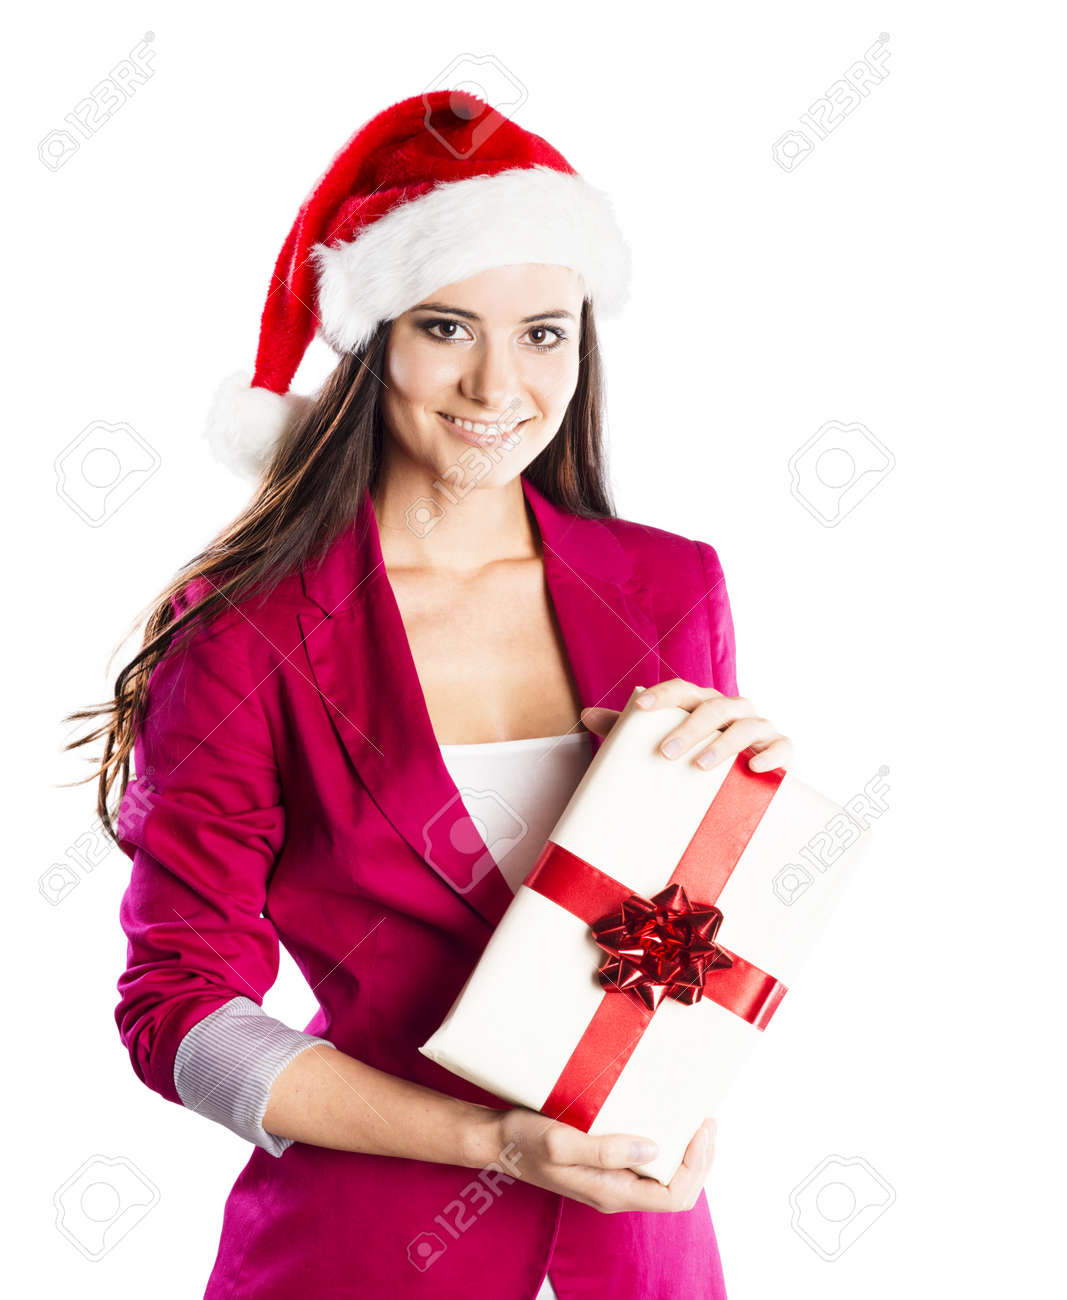 Beautiful woman with christmas hat is holding gift  Isolated on white background Stock Photo - 23122720